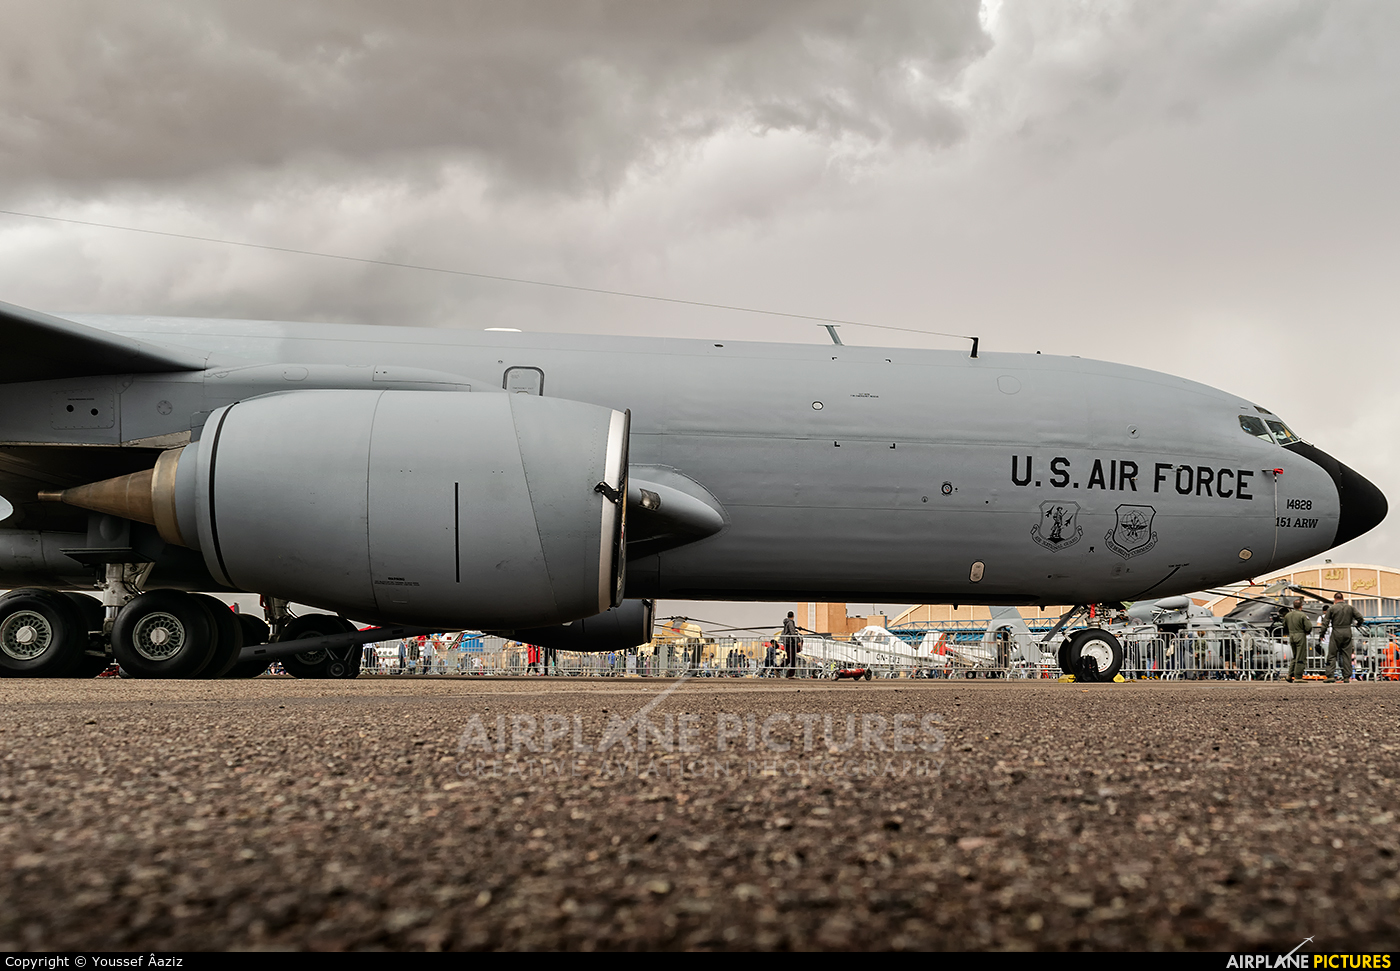 USA - Air Force 64-14828 aircraft at Marrakech - Menara